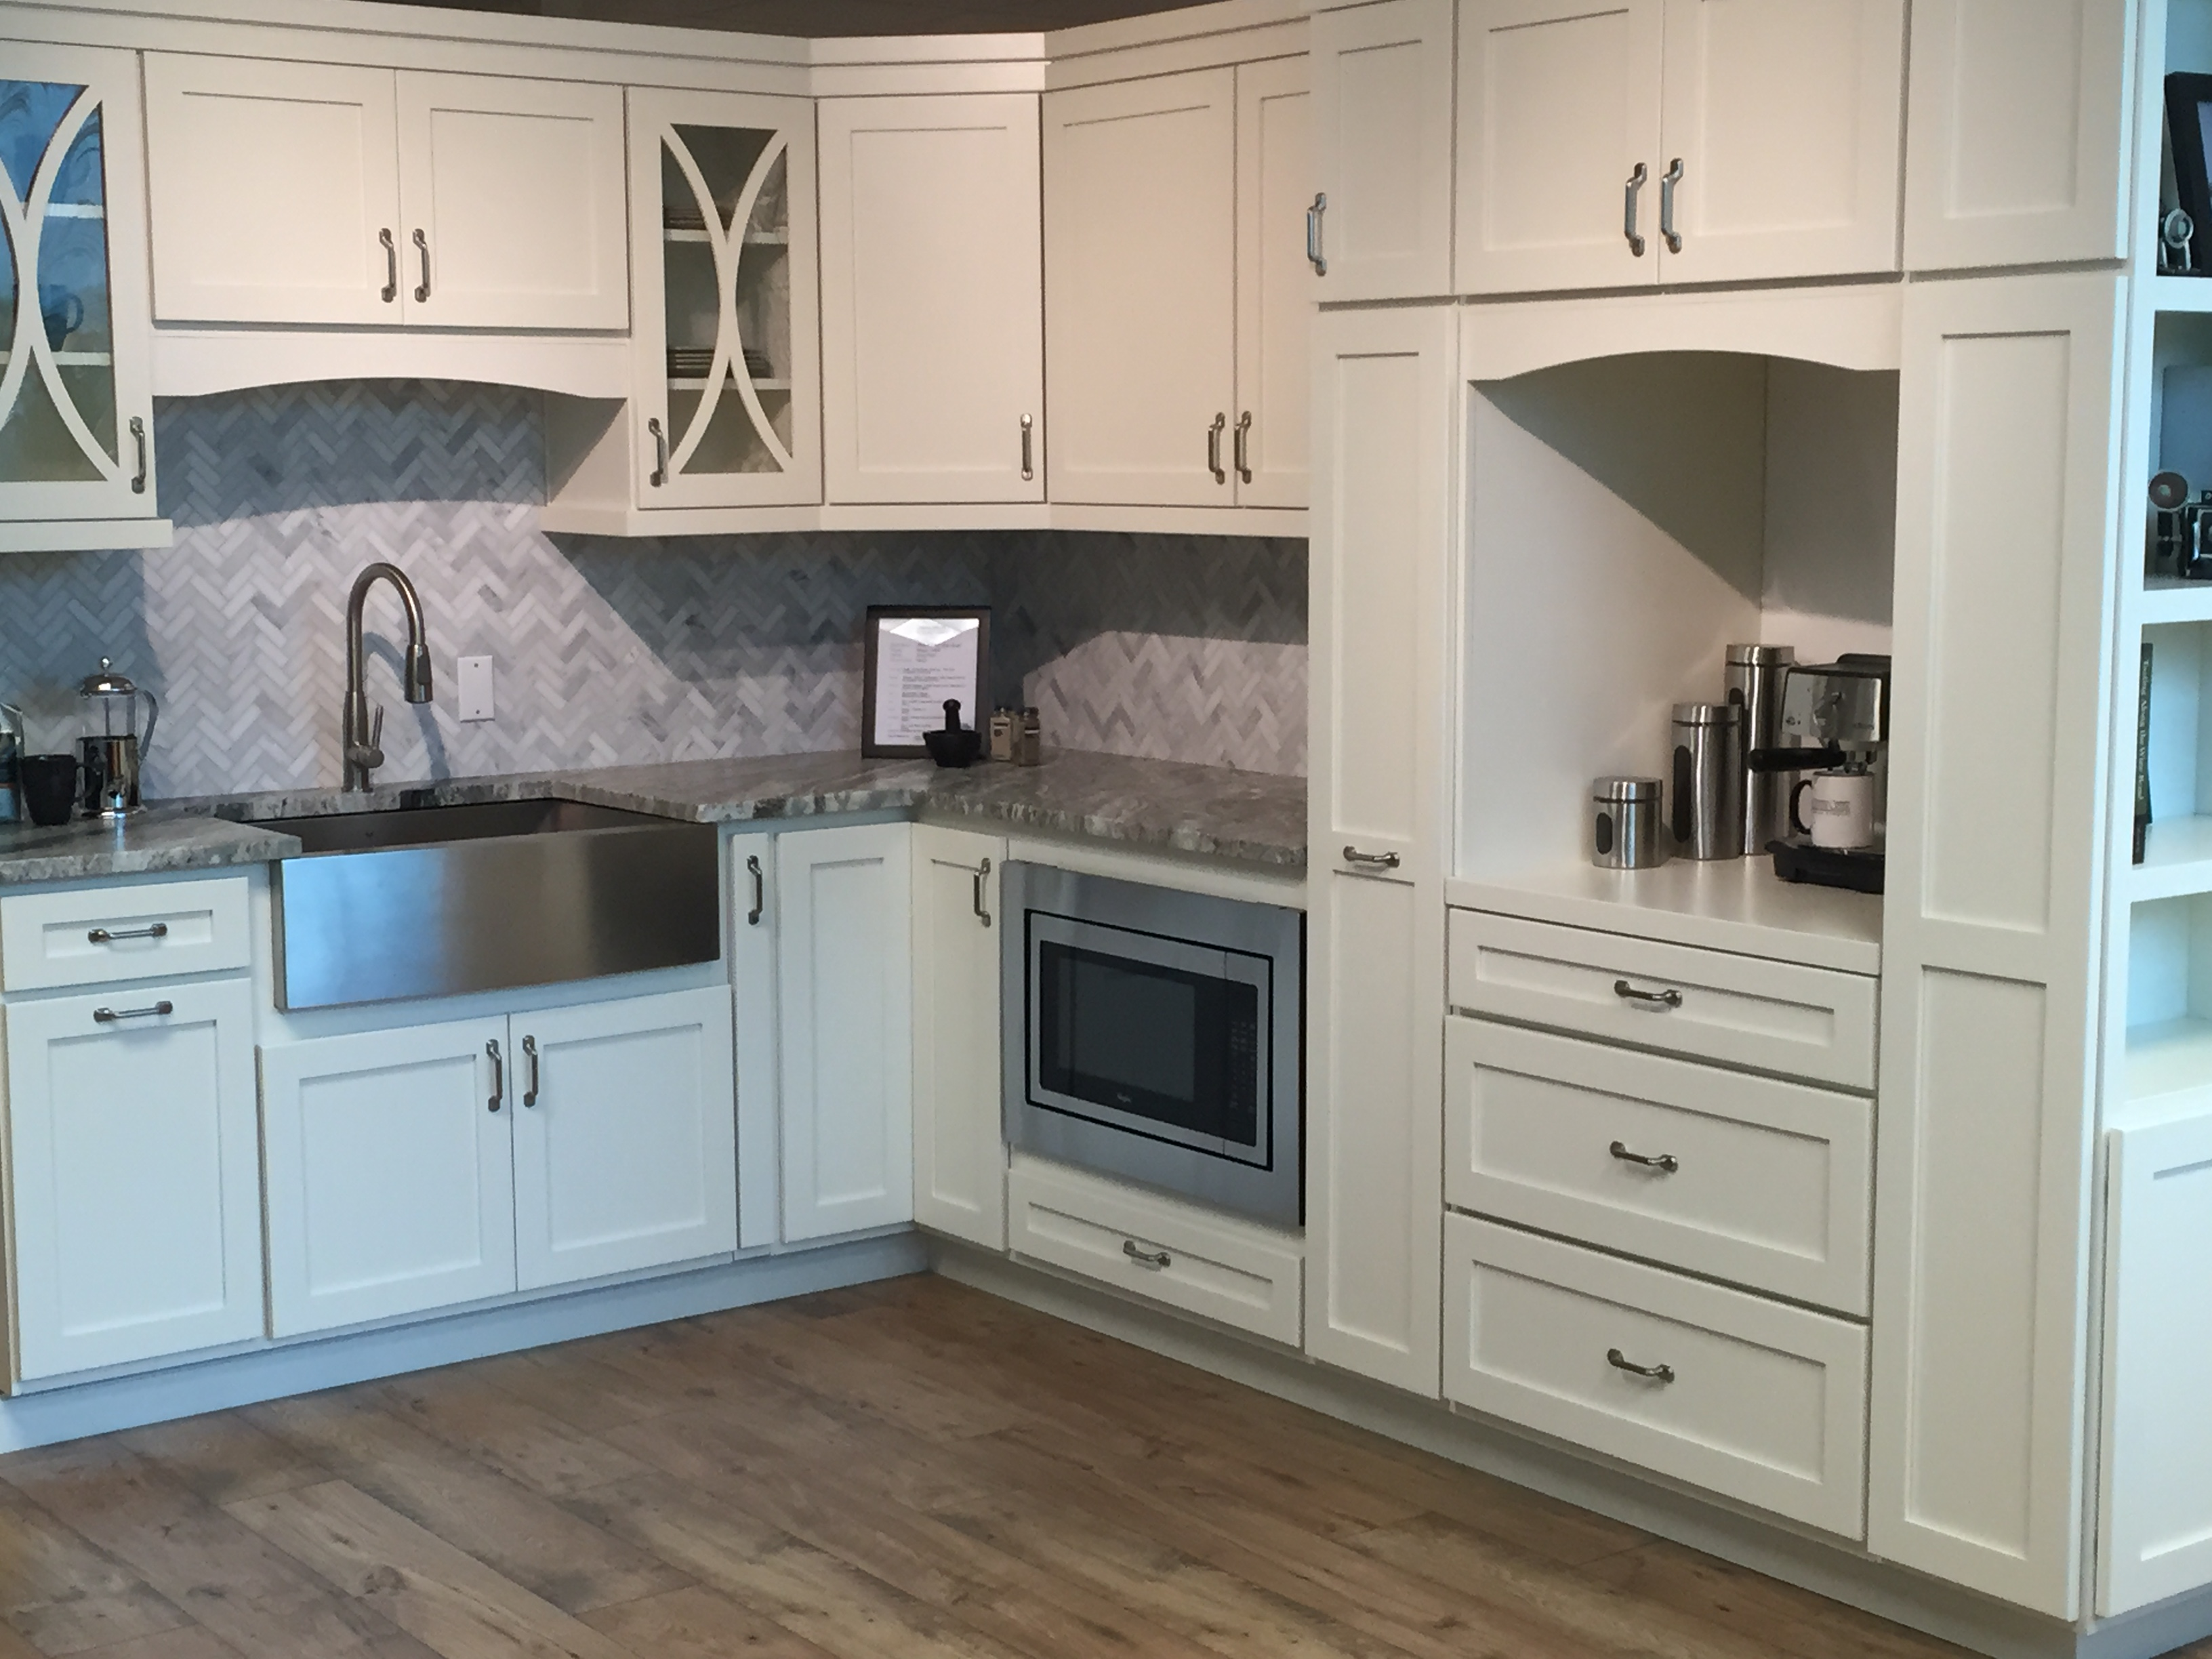 heres a pretty kitchen in their show room with full overlay shaker cabinets